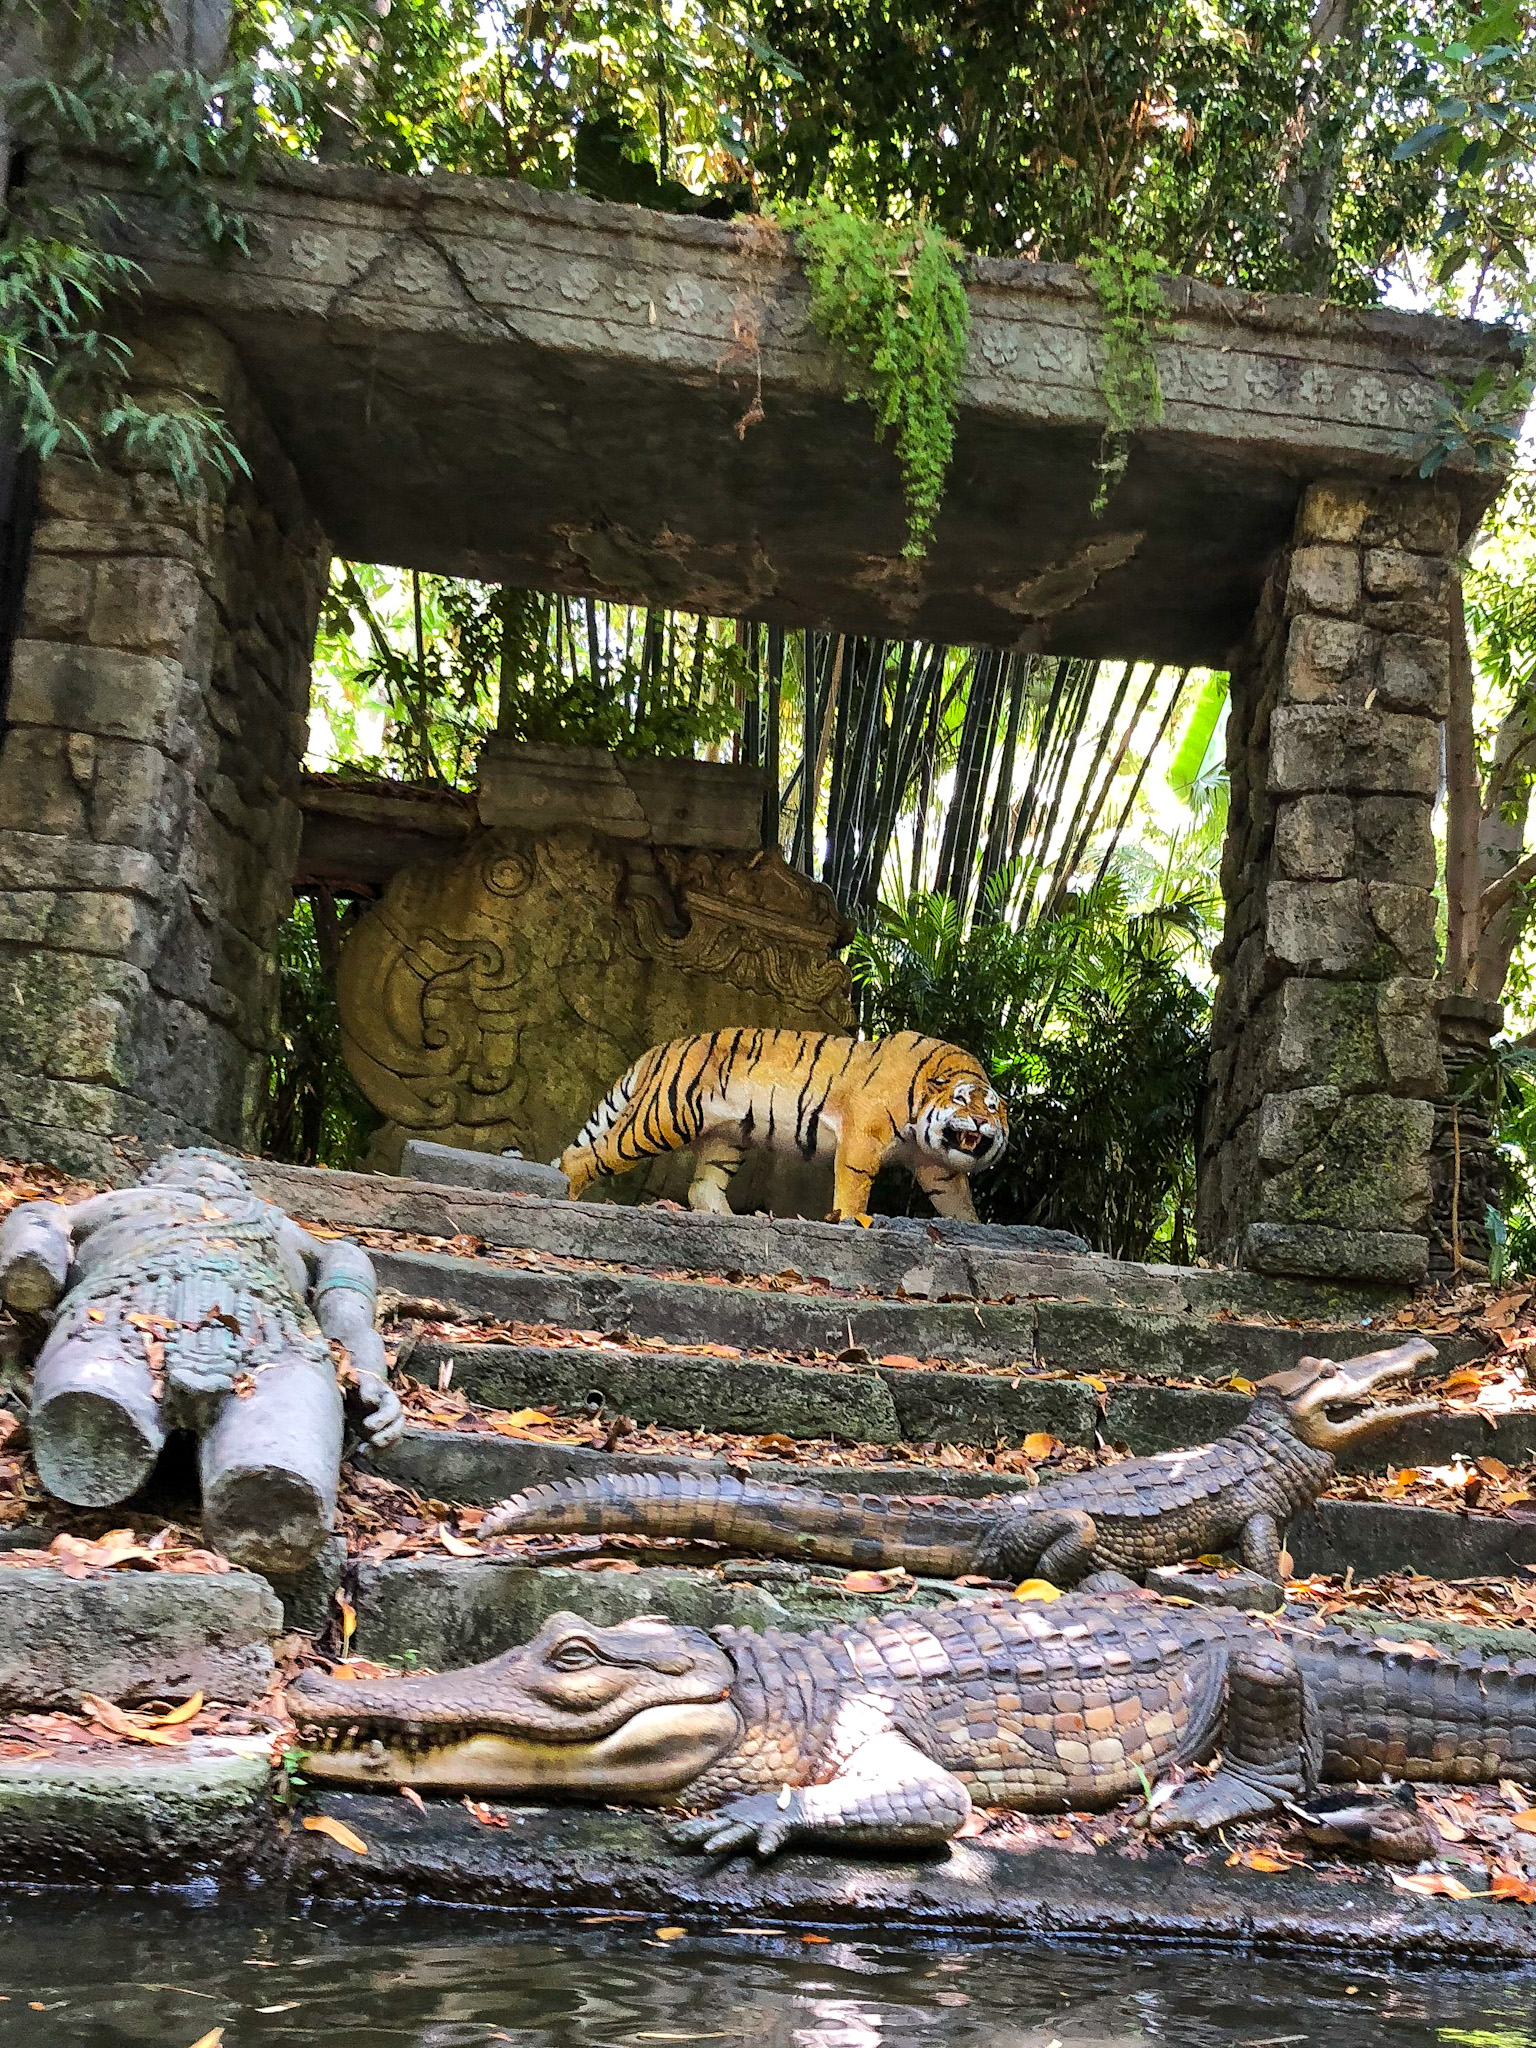 Bengal Tiger animatronic from Jungle Cruise attraction at Walt Disney World